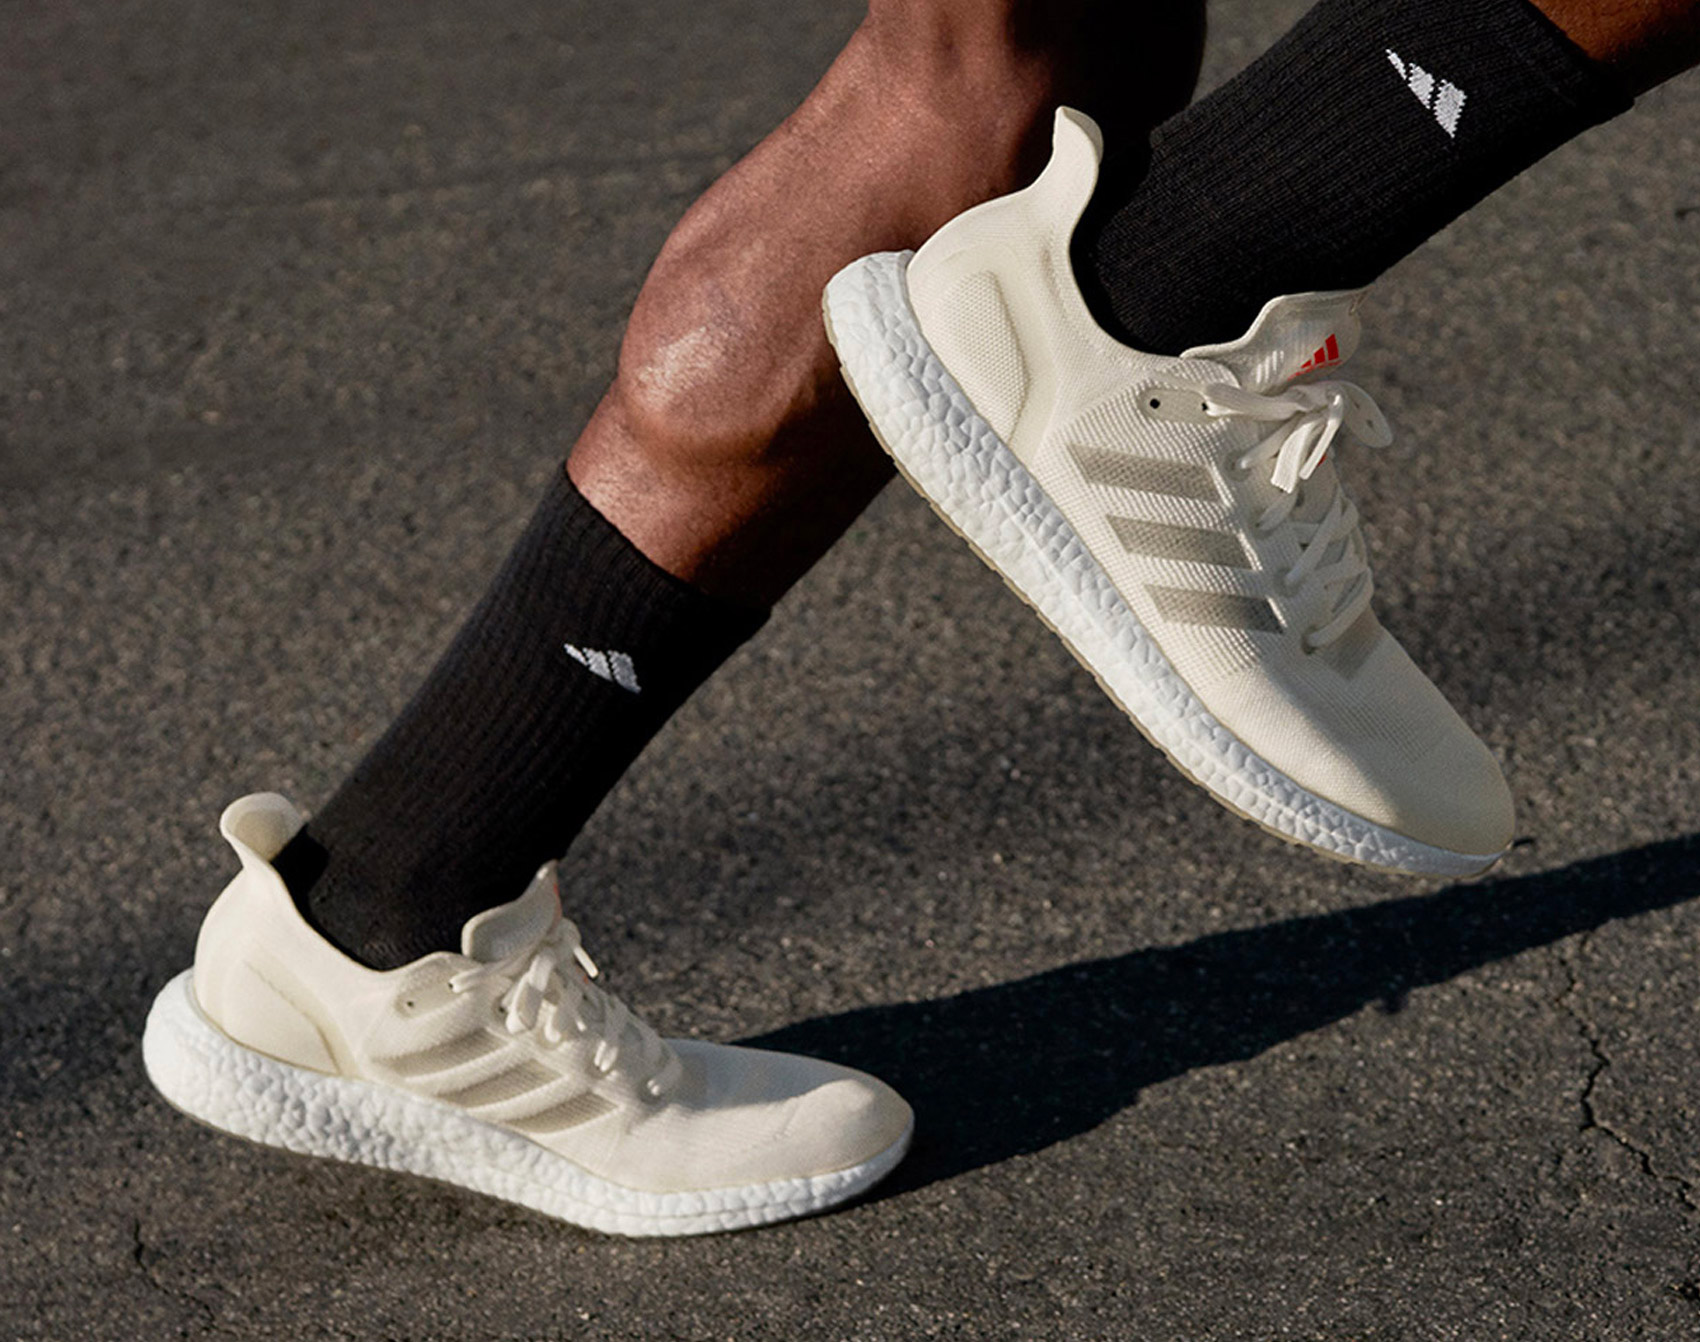 Adidas Introduces 100% Recyclable Running Shoe at werd.com